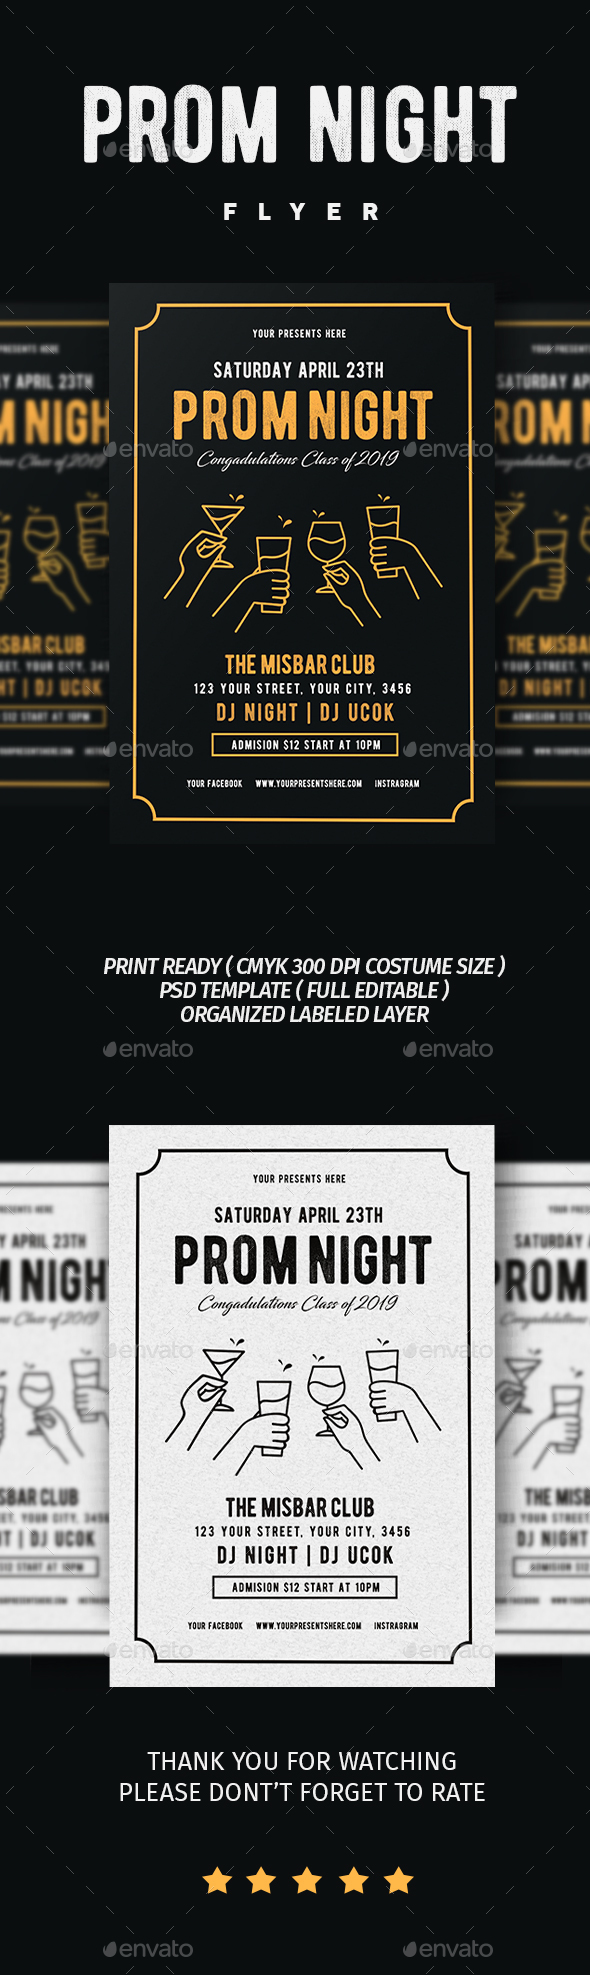 From Night Party Flyer - Flyers Print Templates